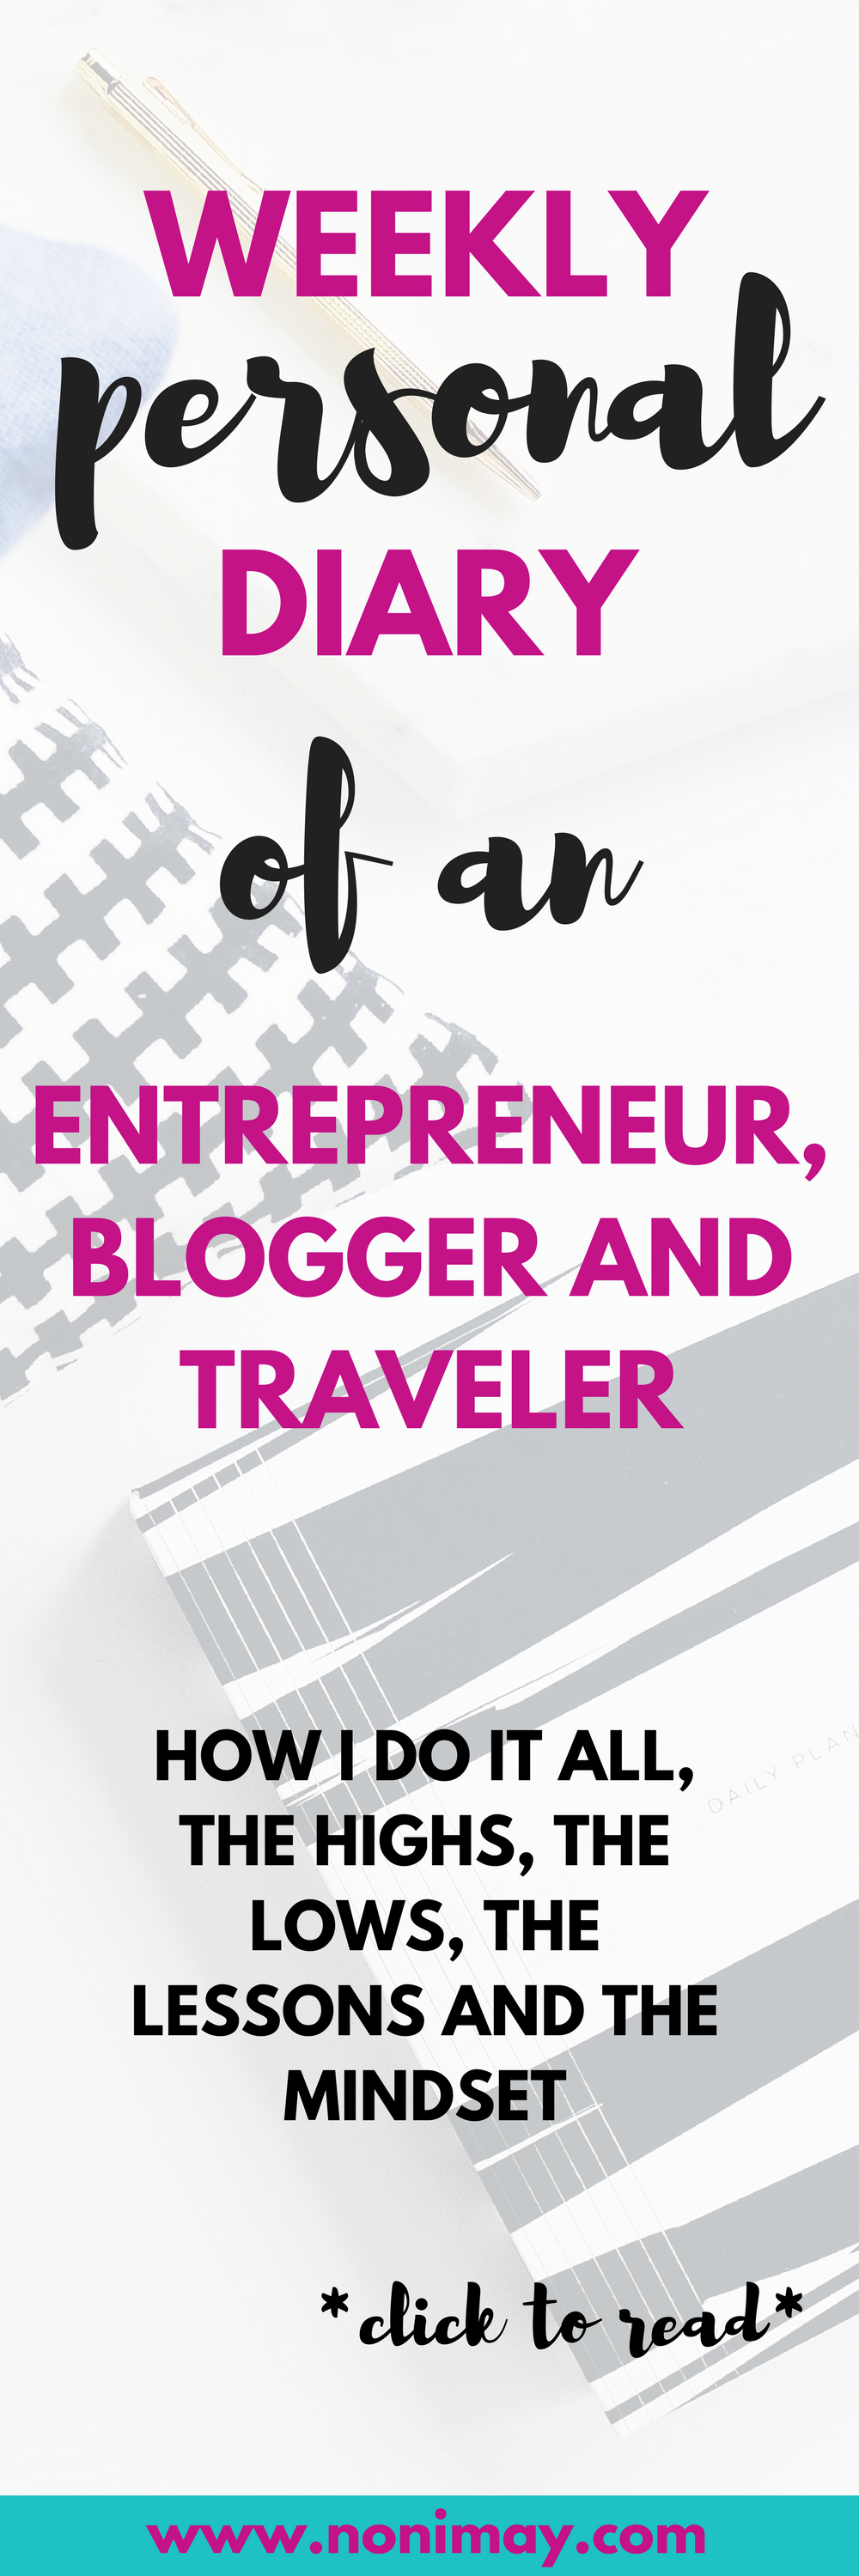 Weekly personal diary of an entrepreneur, blogger and traveler. The highs, the lows, the lessons and the mindset